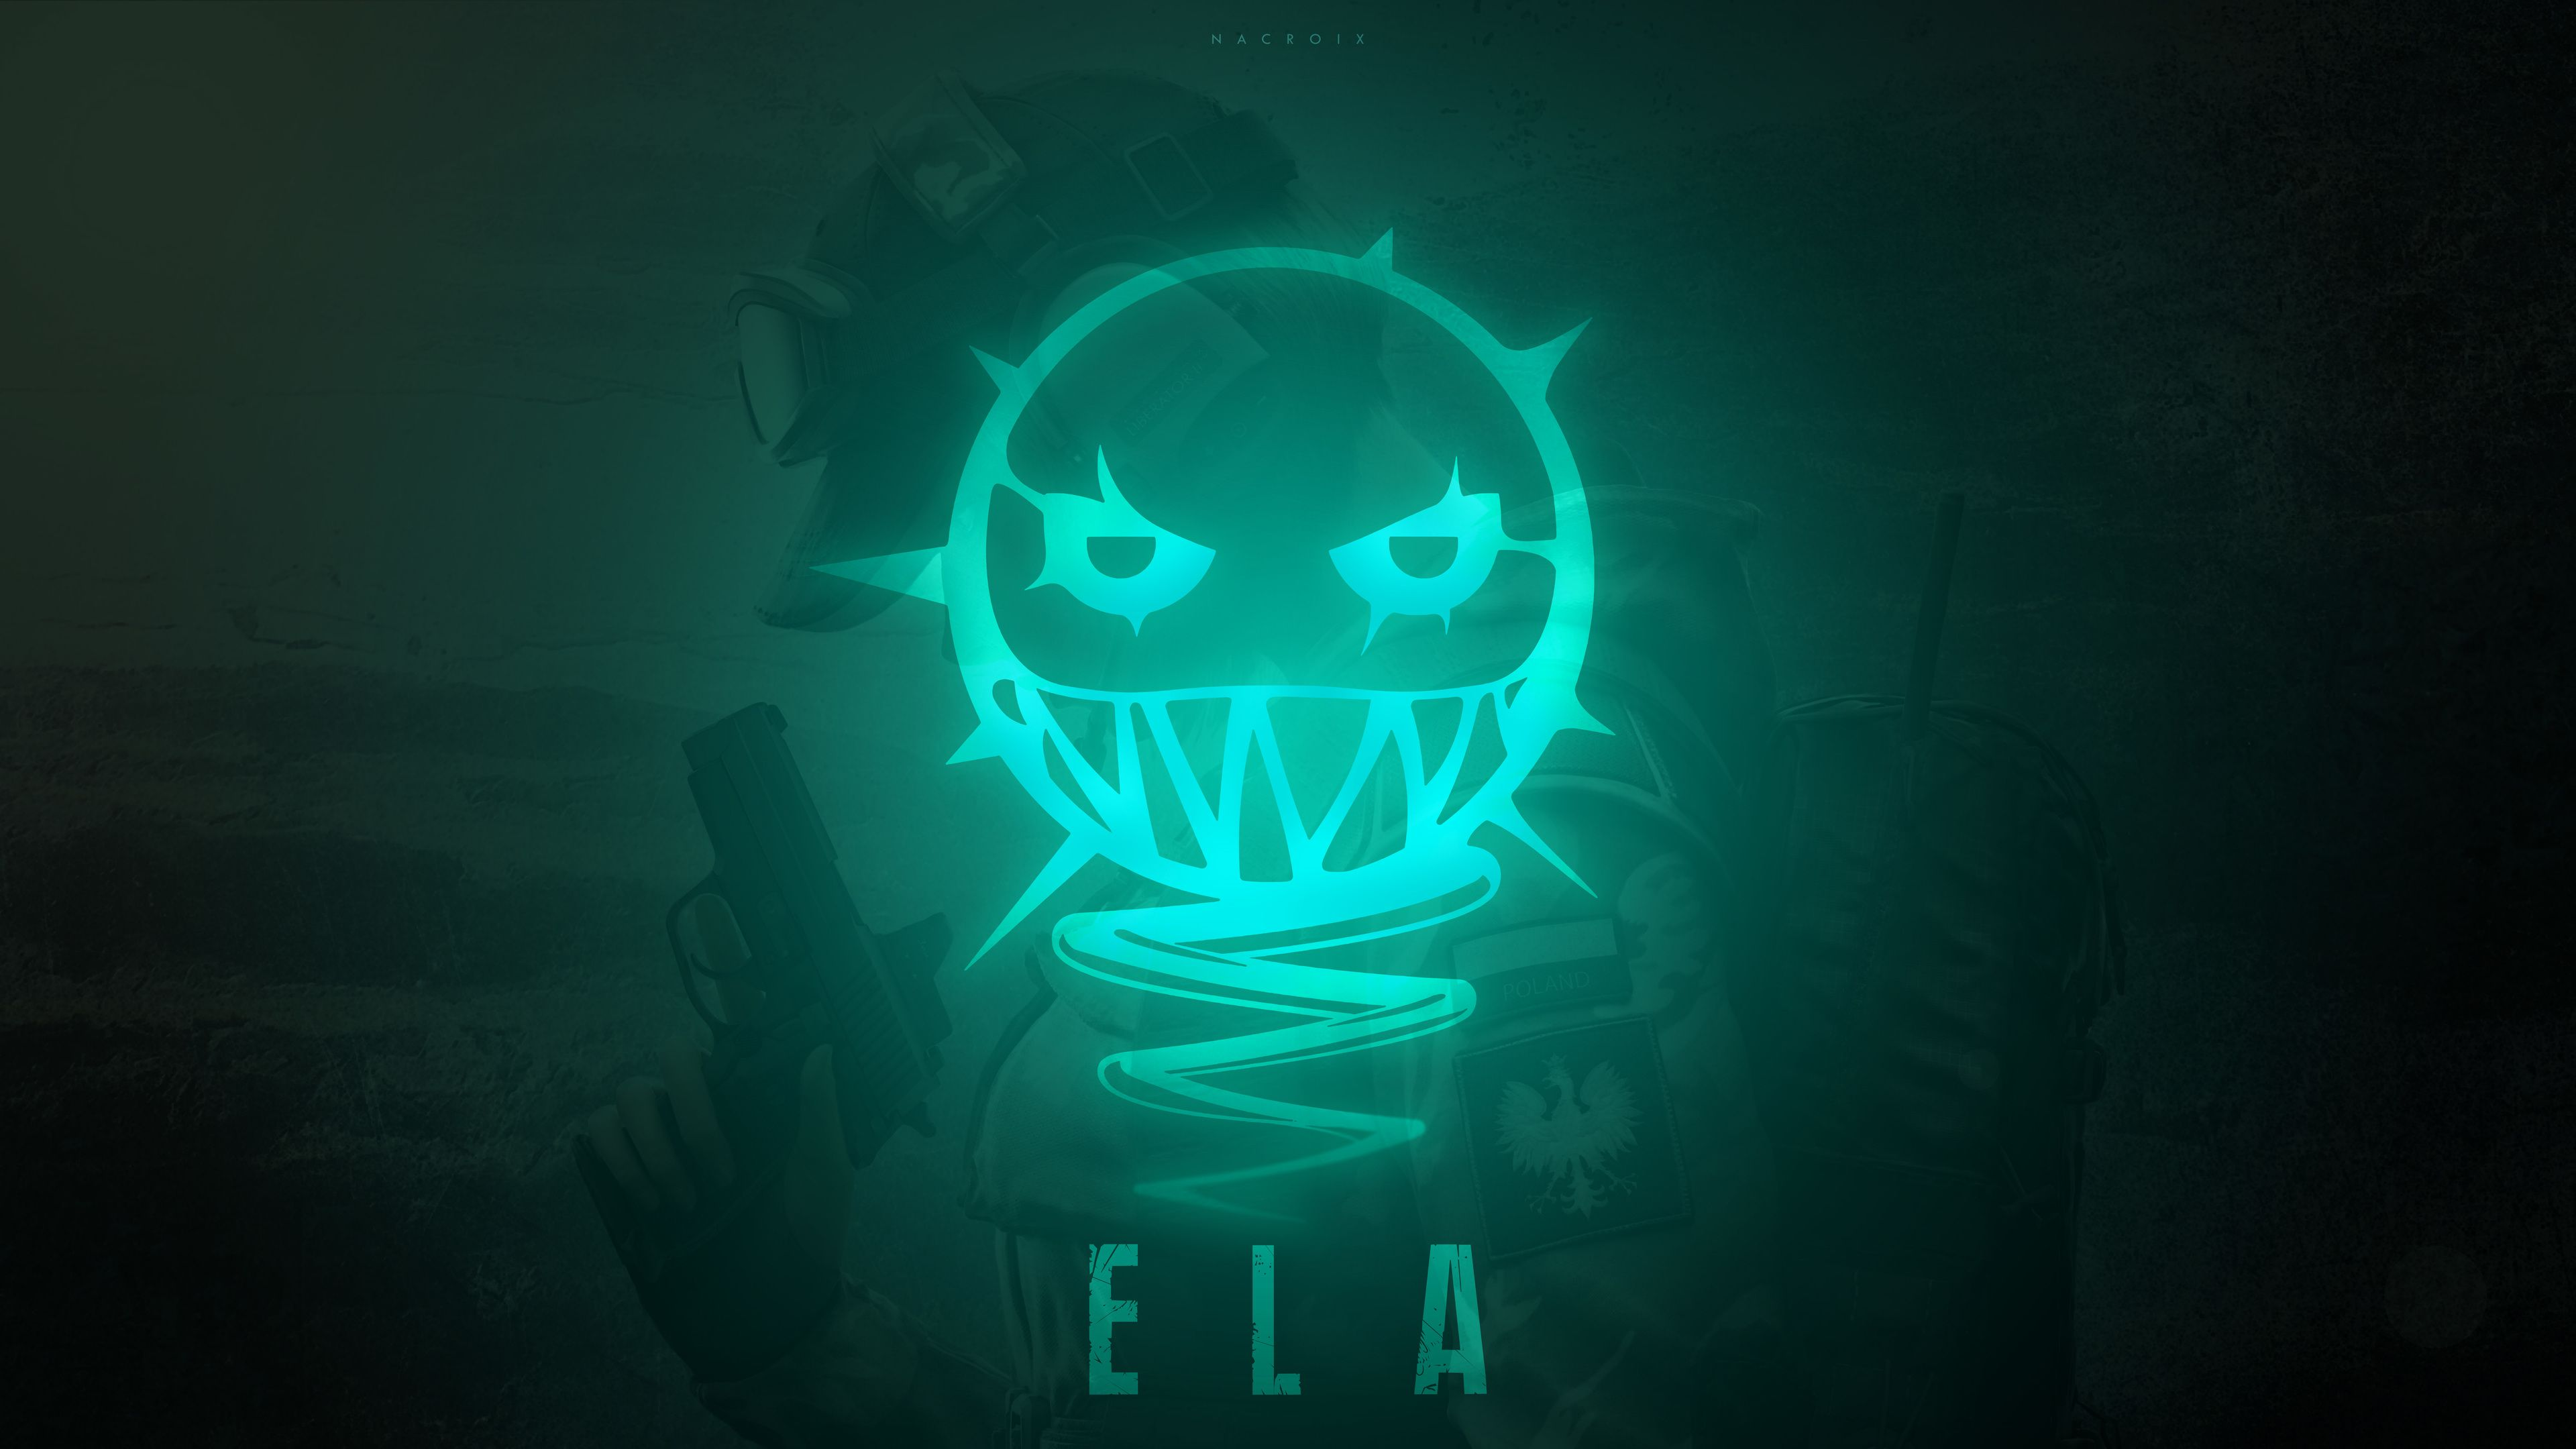 Wallpaper 4k Ela Tom Clancys Rainbow Six Siege Minimalism 12k 12k